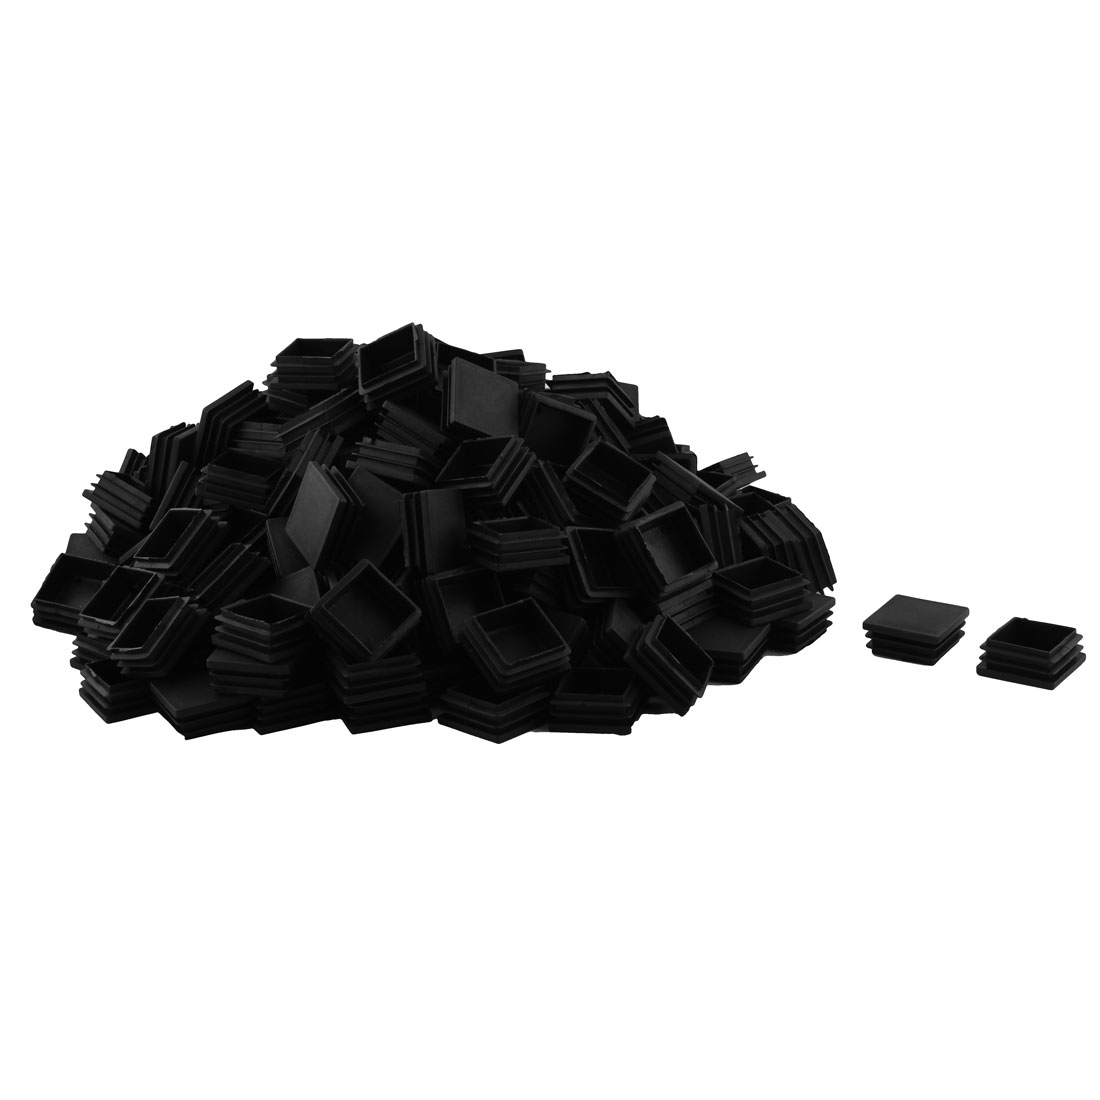 Plastic Square Design Tube Insert End Blanking Cover Cap Black 40 x 40mm 200pcs